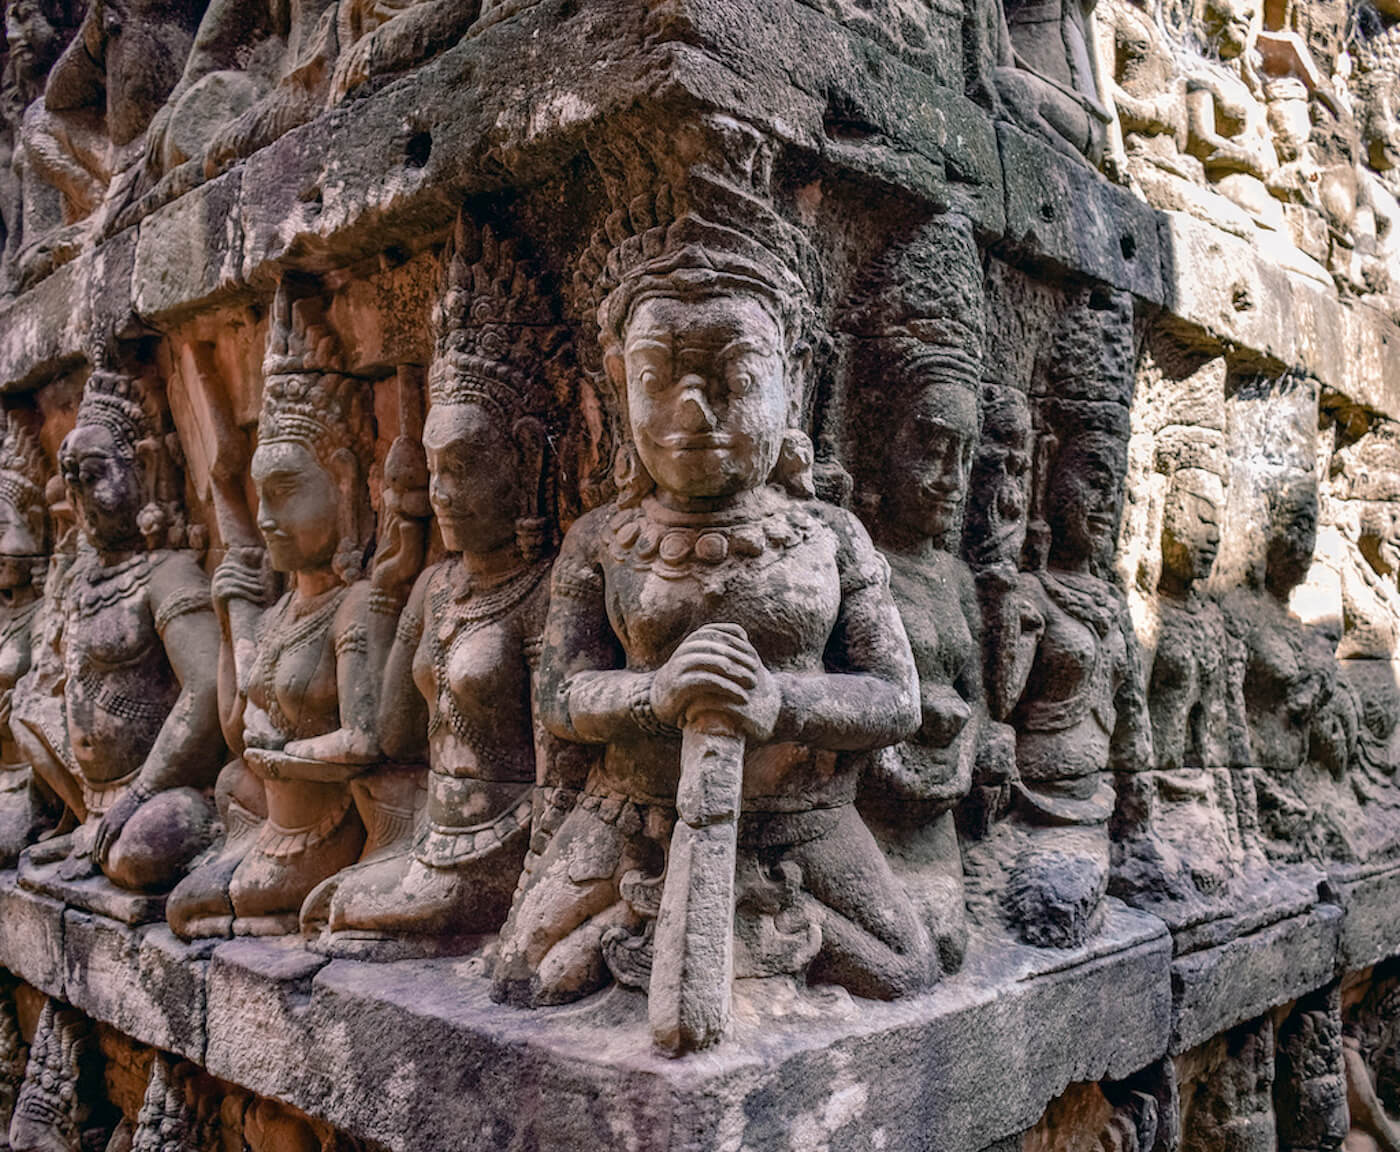 engraved figures in stone temple